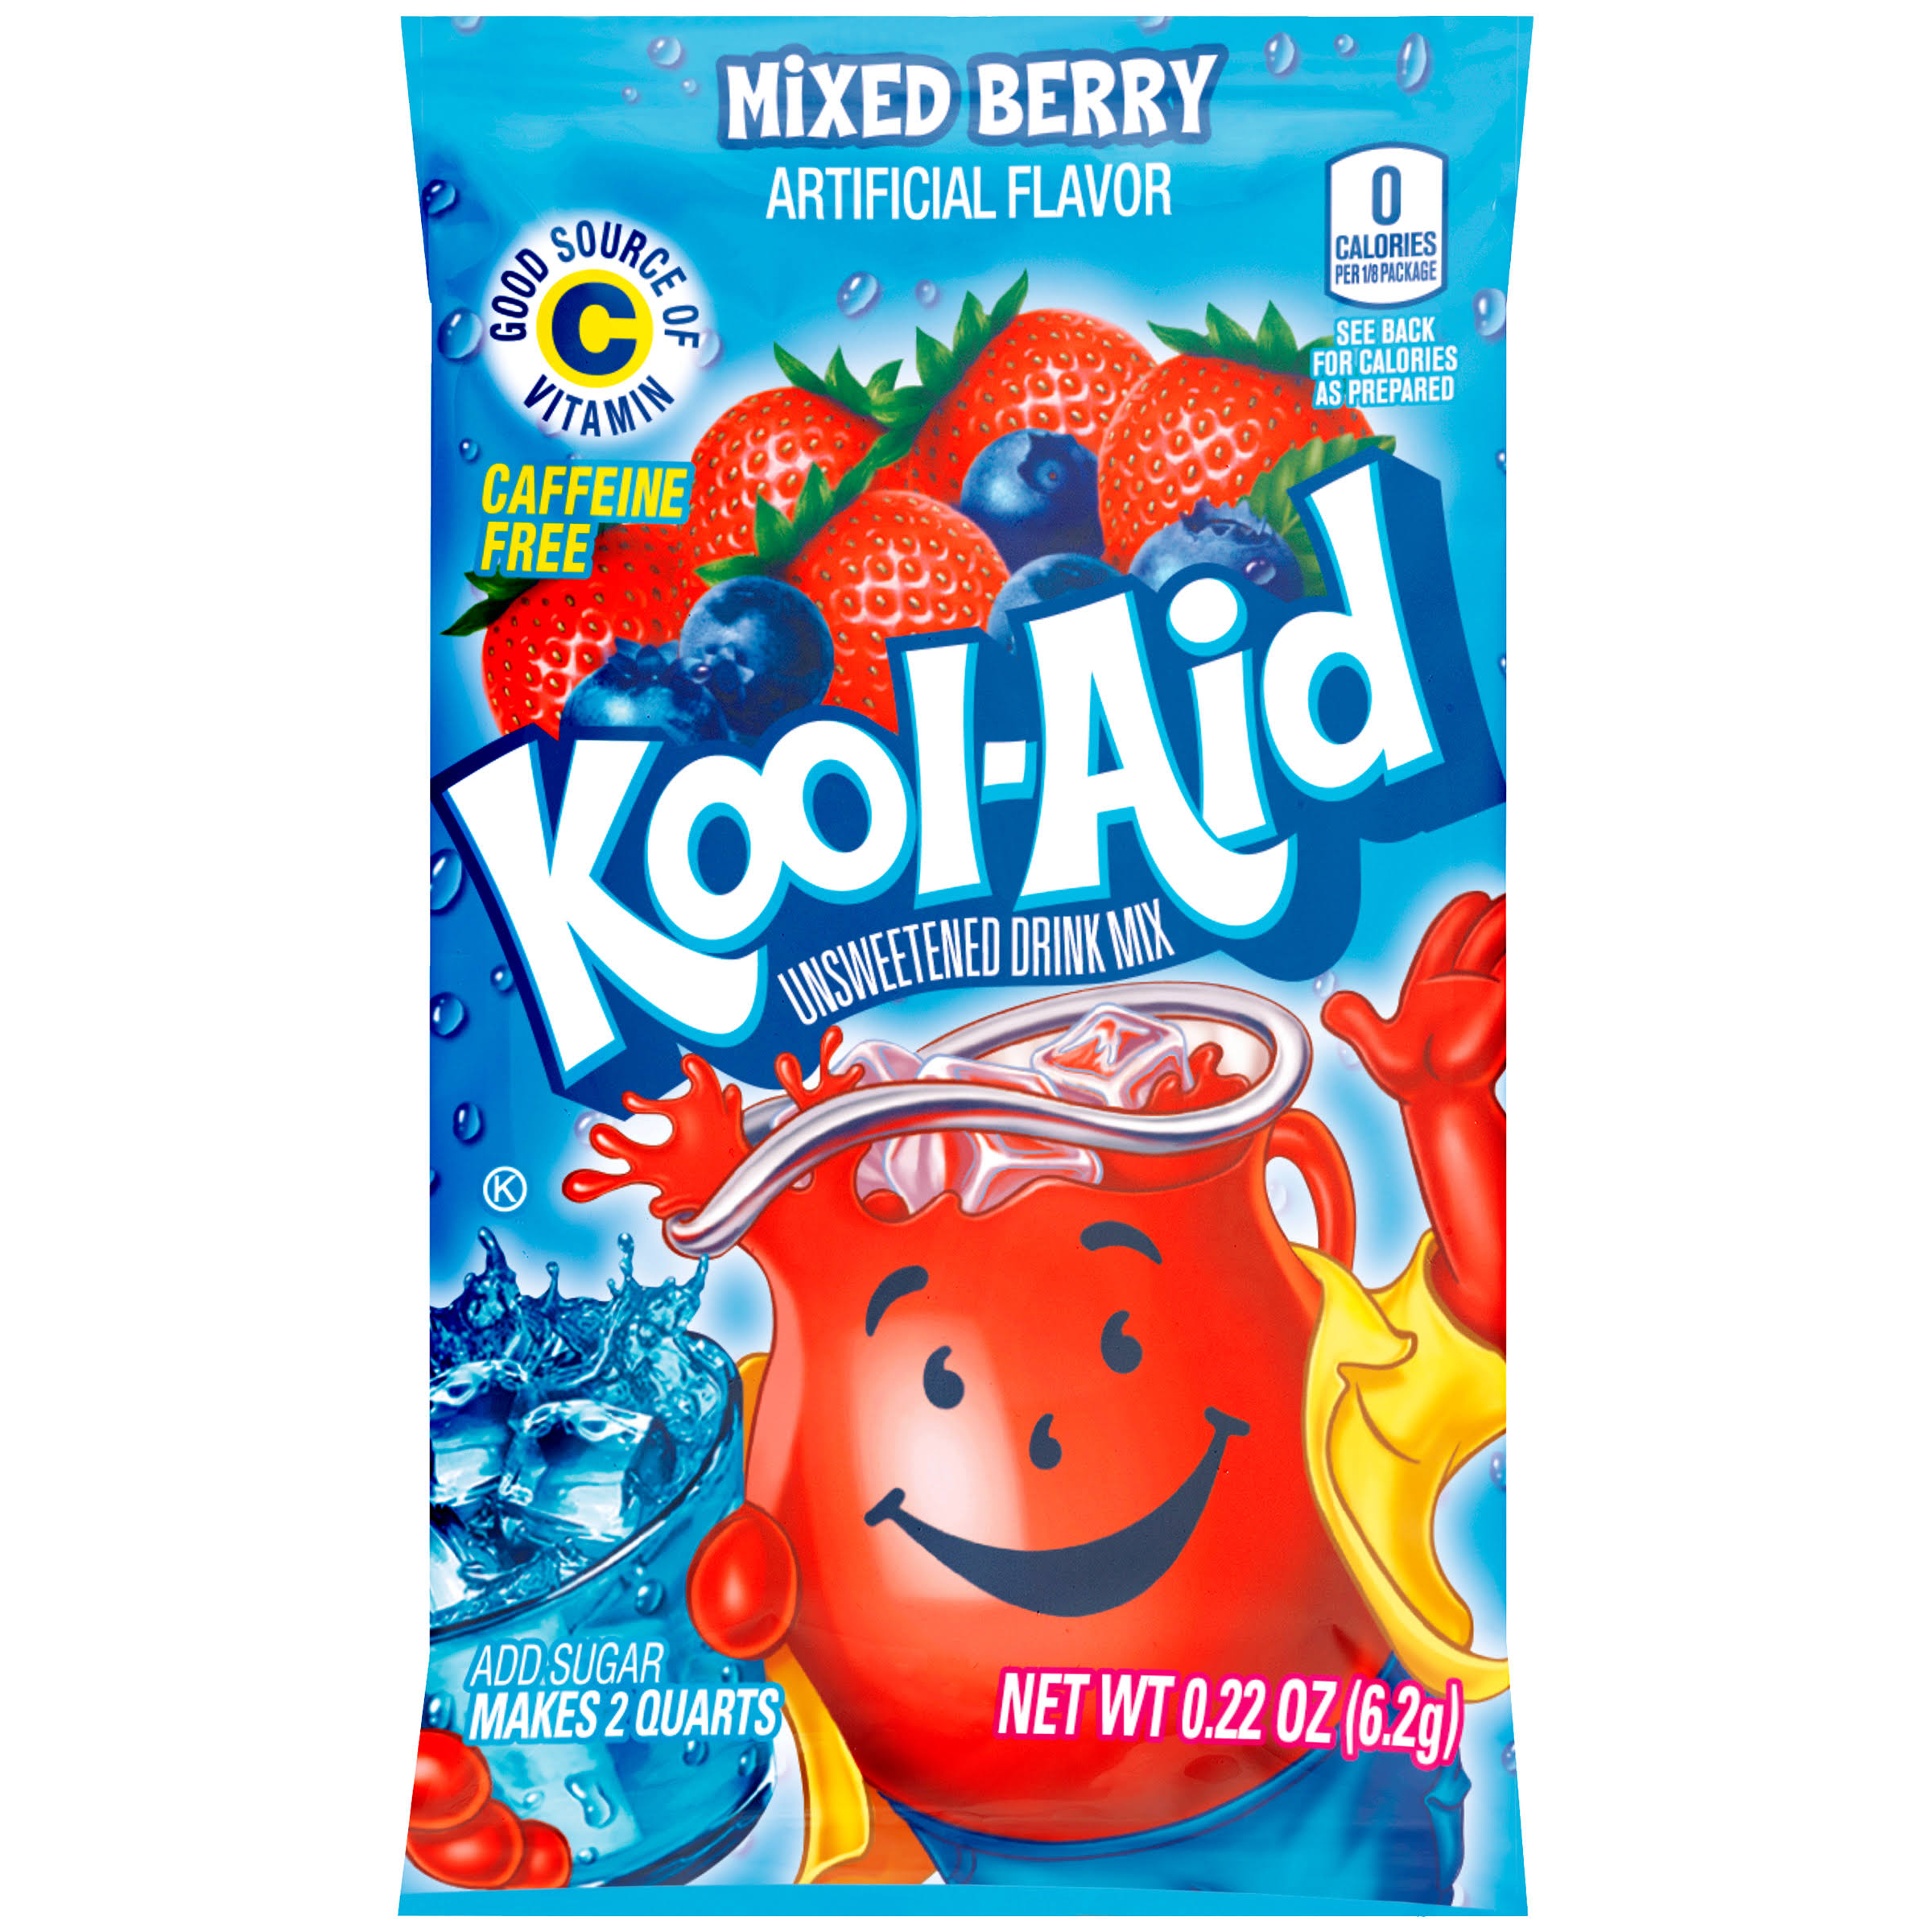 Kool-Aid Unsweetened Drink Mix - 4.8mg, Mixed Berry